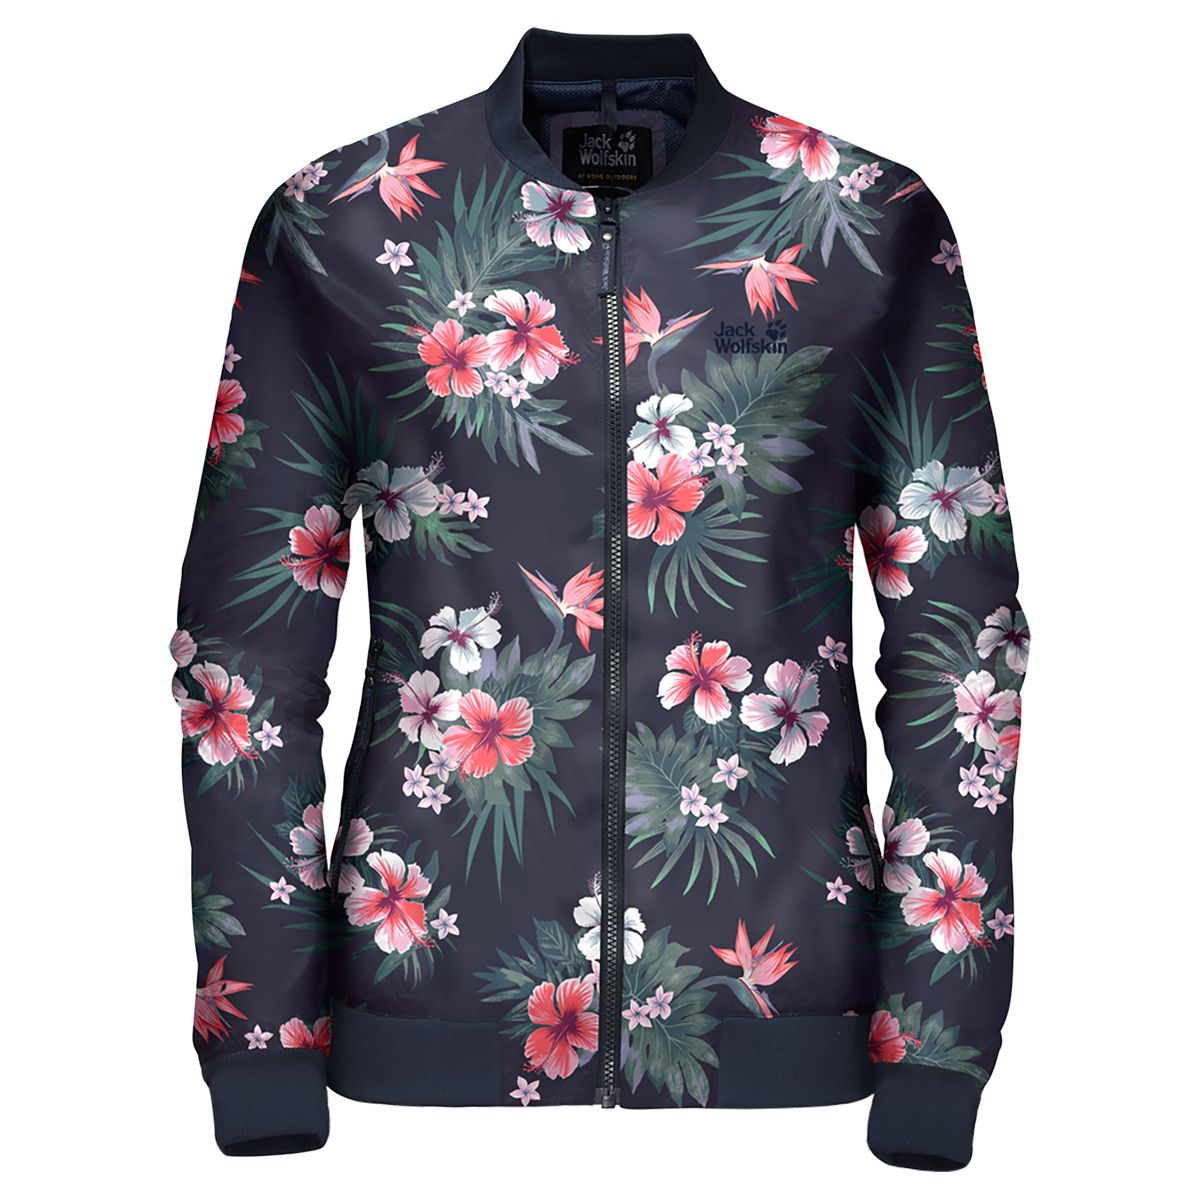 TROPICAL BLOUSON W women's fleece jacket